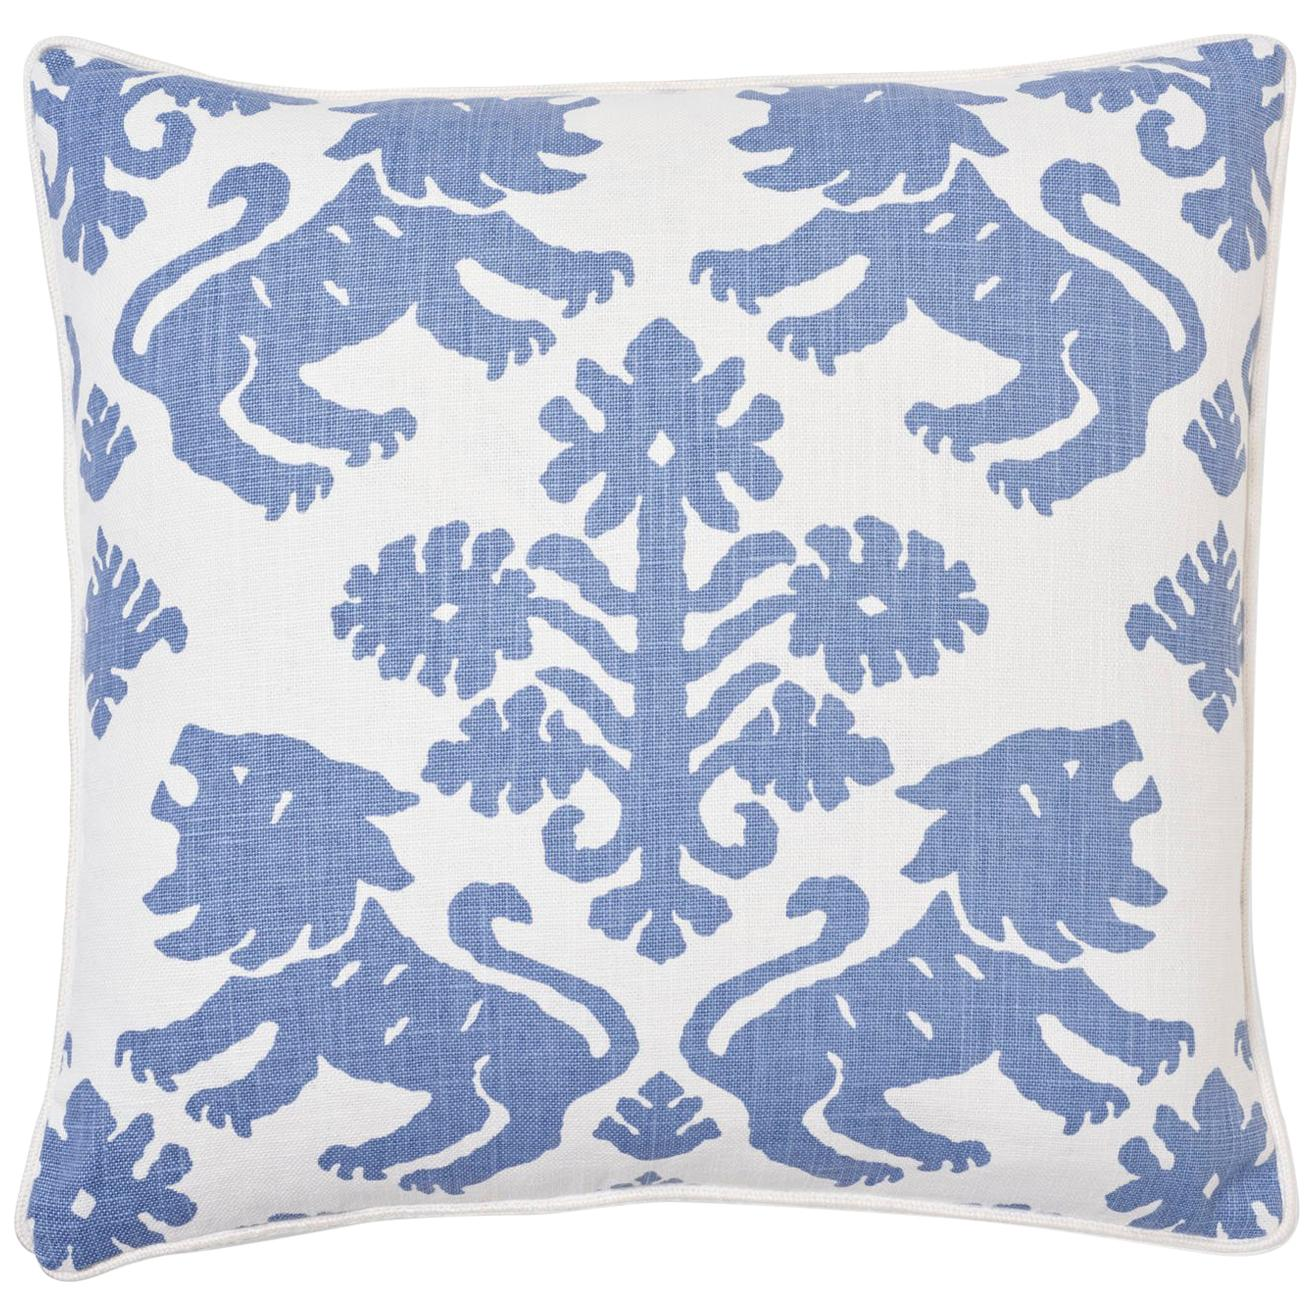 Schumacher Regalia Blue Two-Sided Linen Cotton Pillow